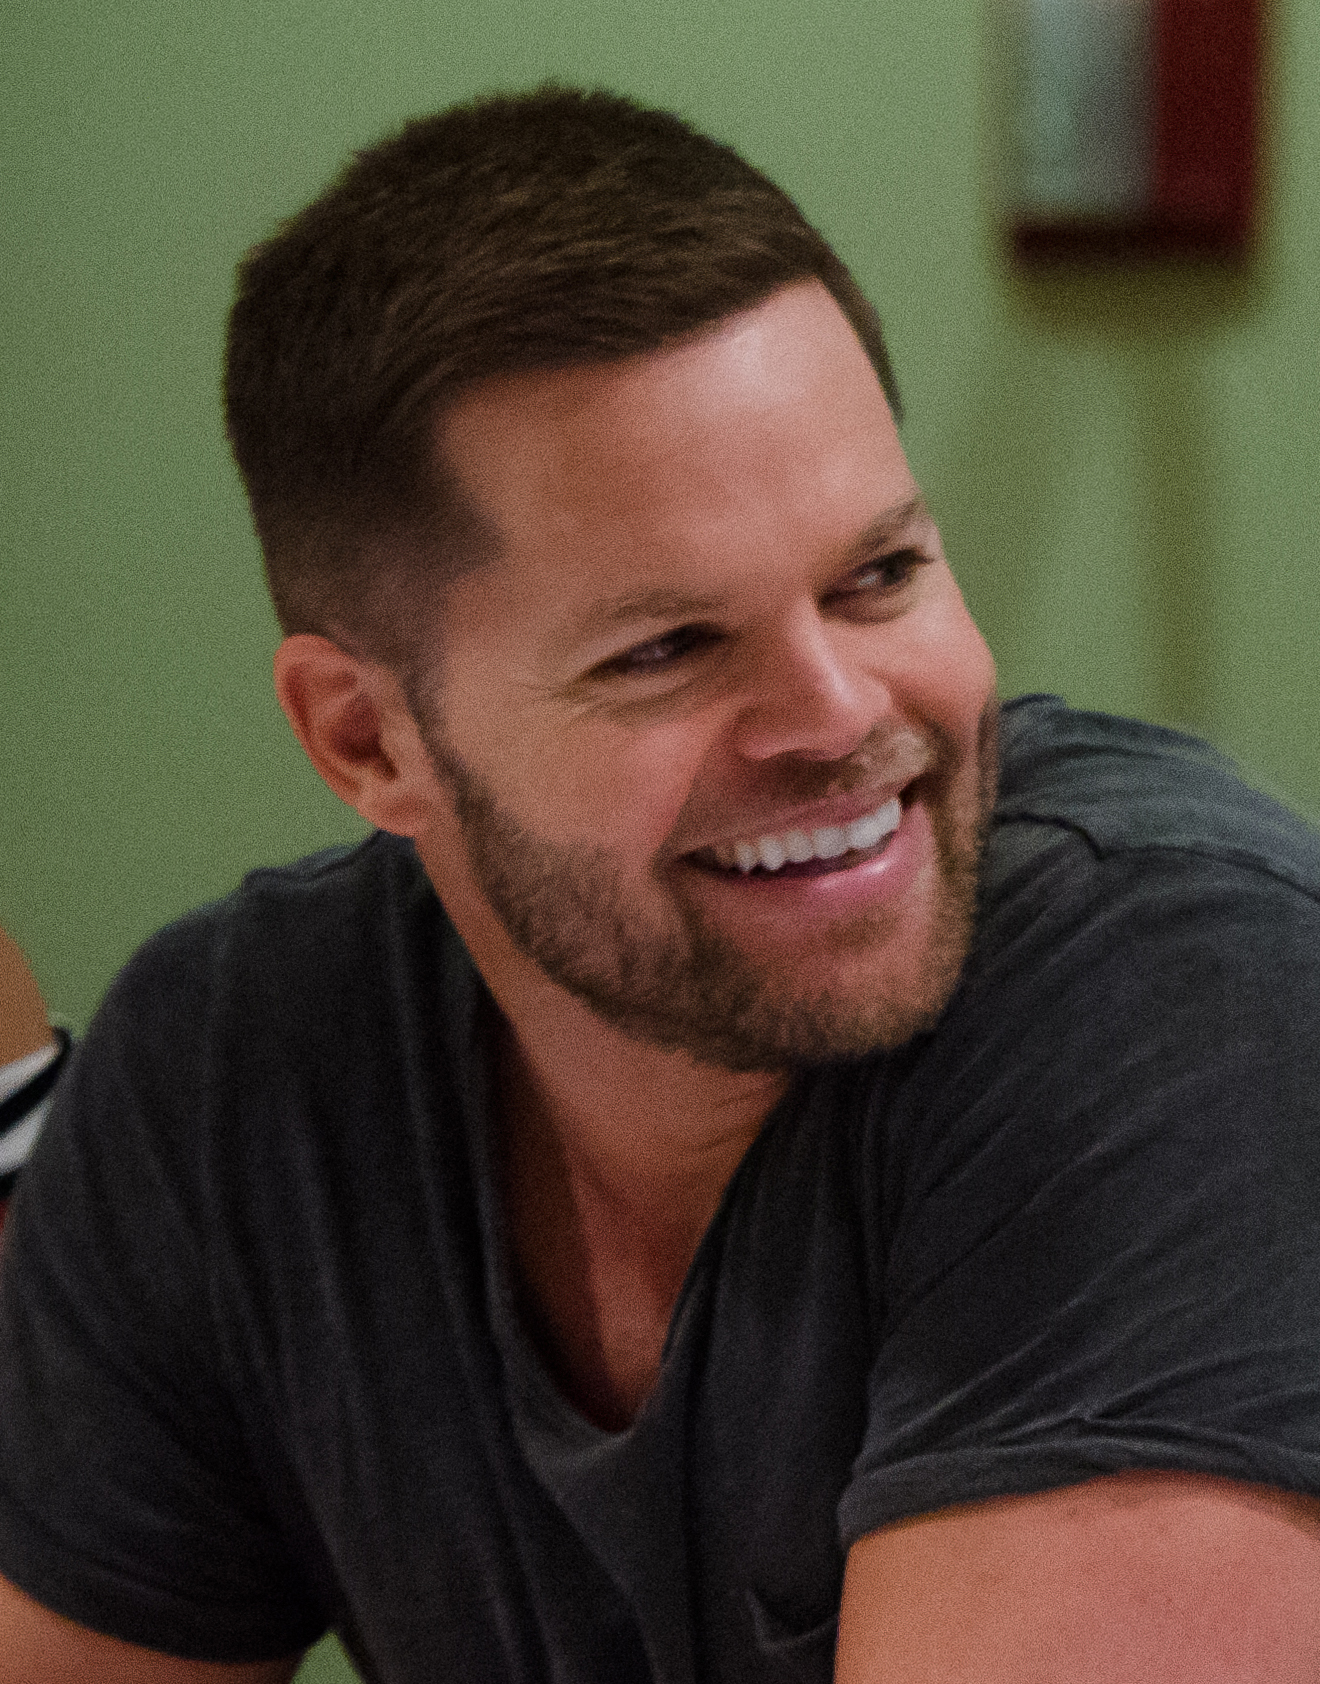 The 40-year old son of father (?) and mother(?) Wes Chatham in 2019 photo. Wes Chatham earned a  million dollar salary - leaving the net worth at 1 million in 2019